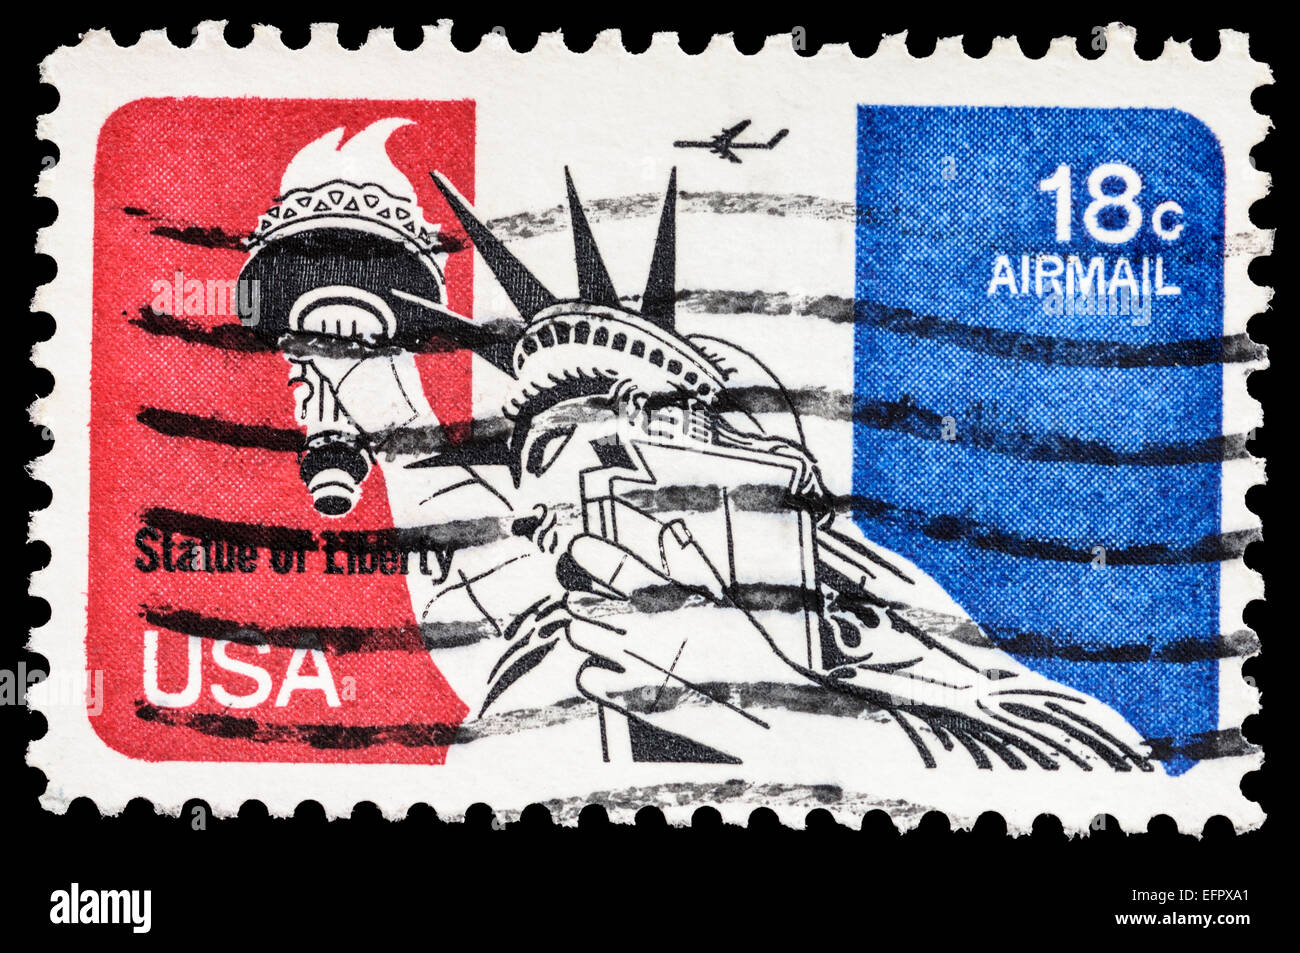 us postage stamp stock